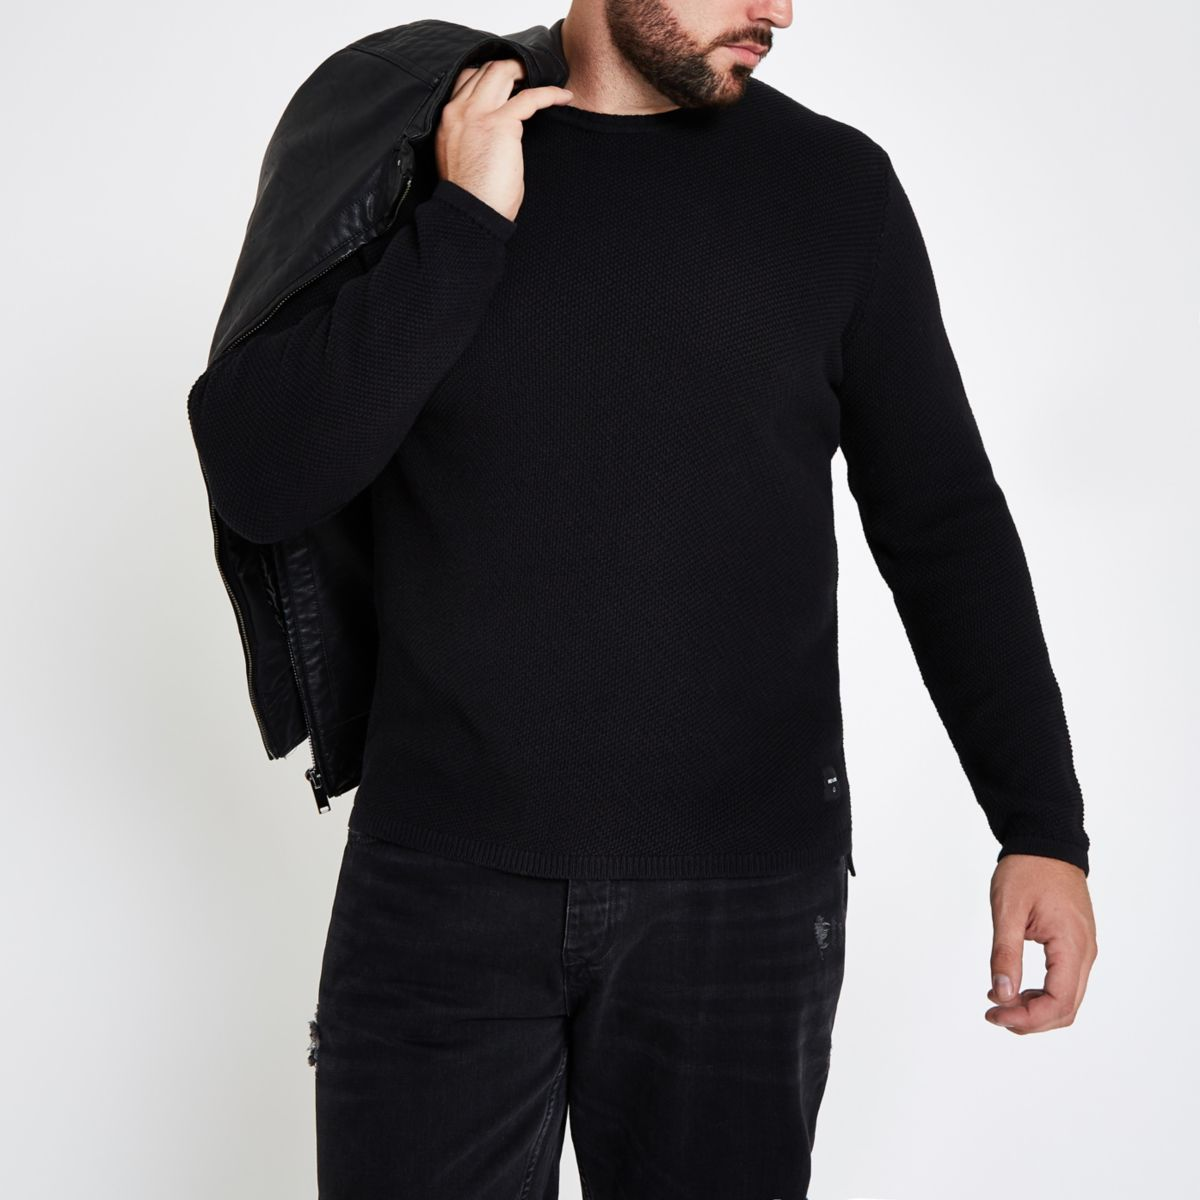 Only & Sons Big & Tall black crew neck sweater